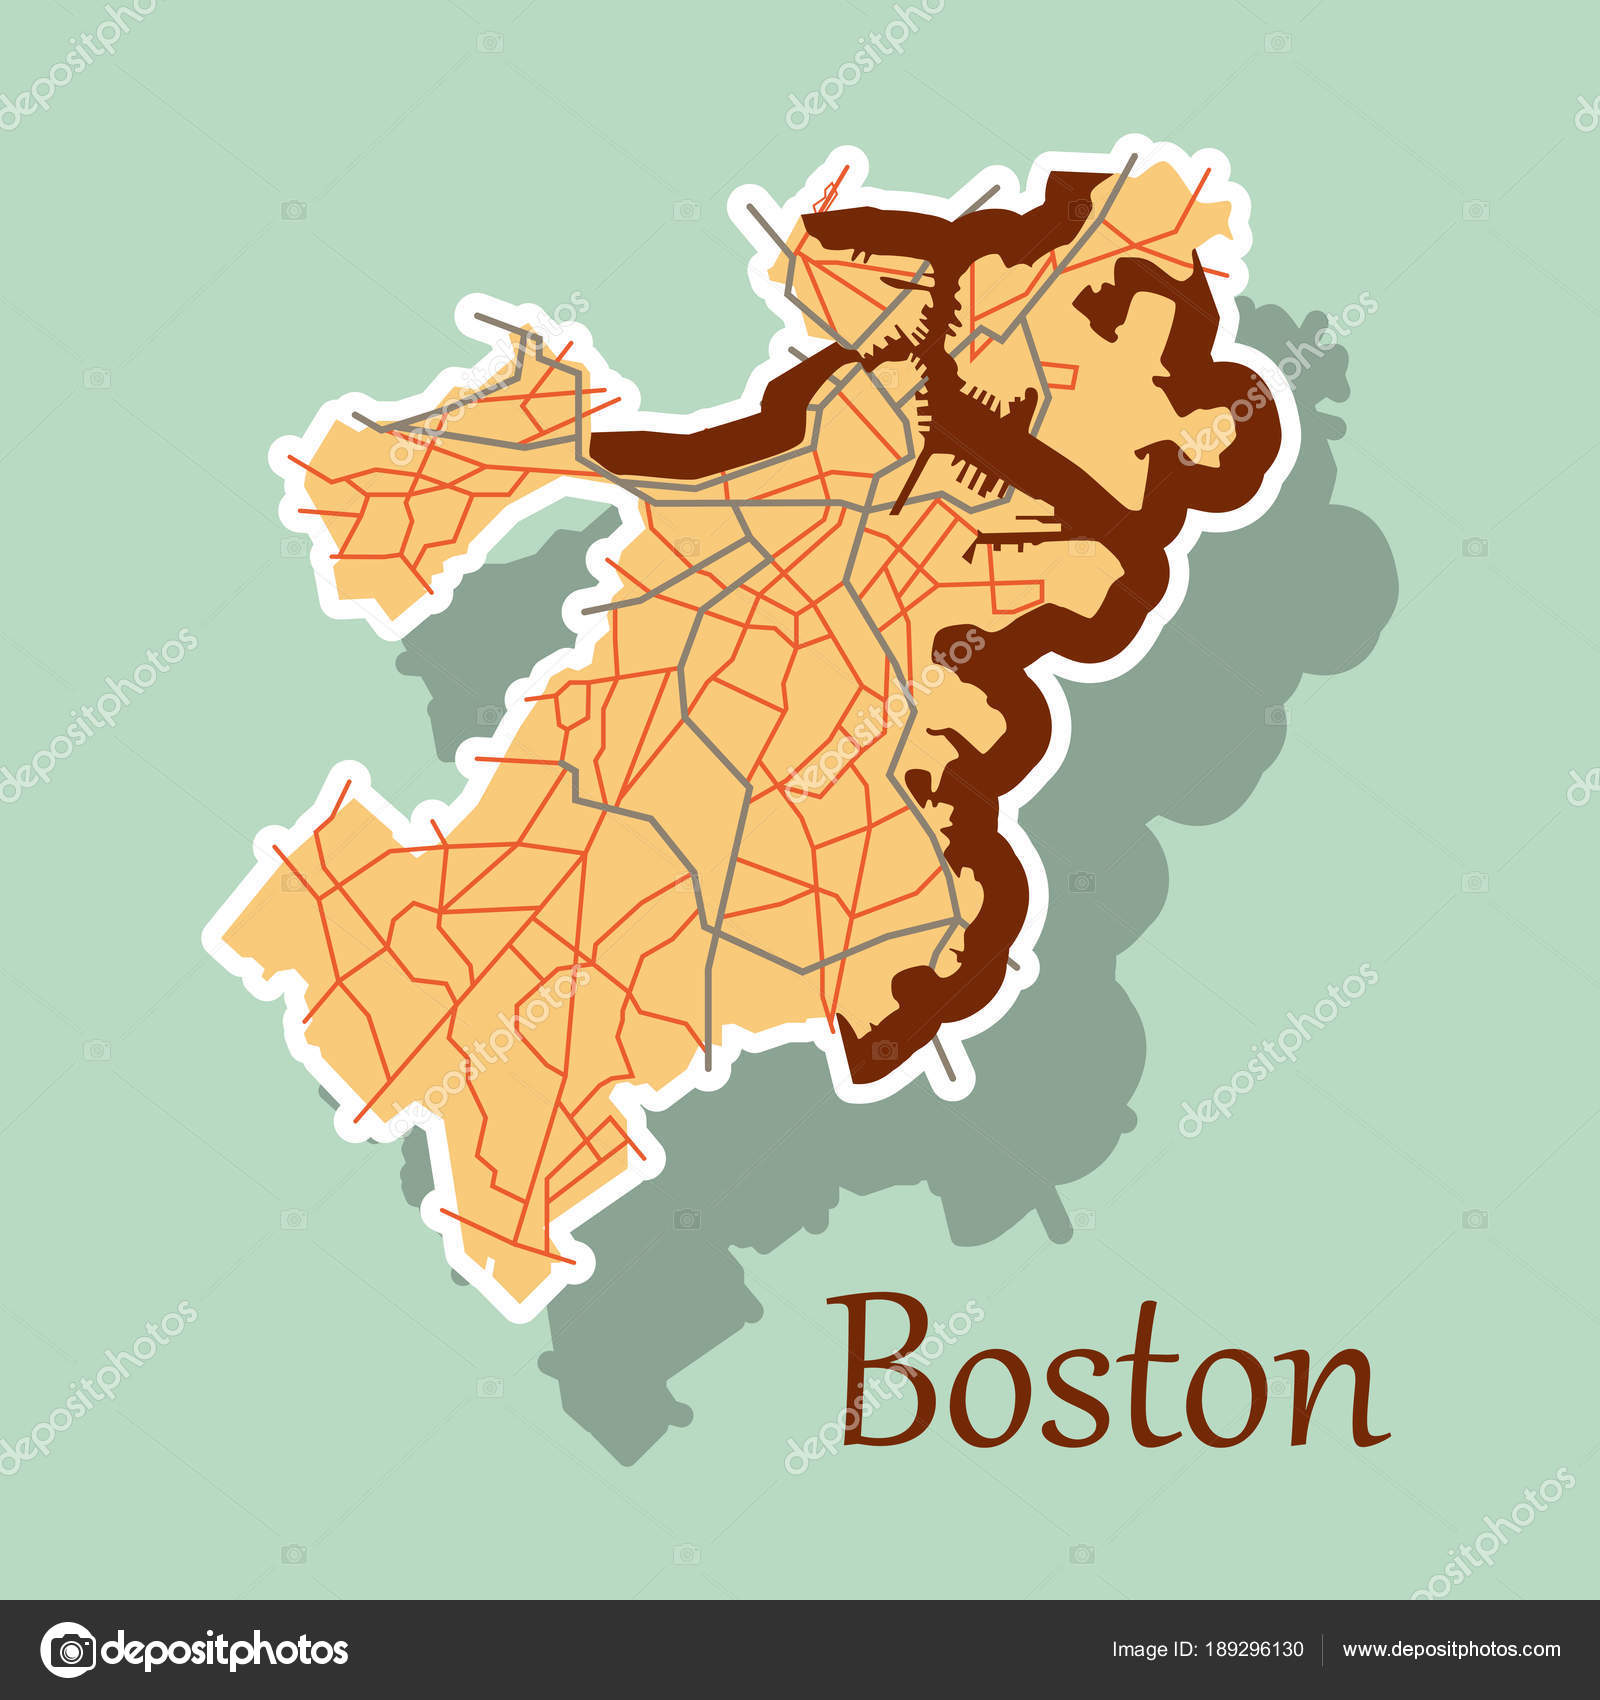 Map of boston city sticker illustration stock vector map of boston city sticker illustration stock vector gumiabroncs Images